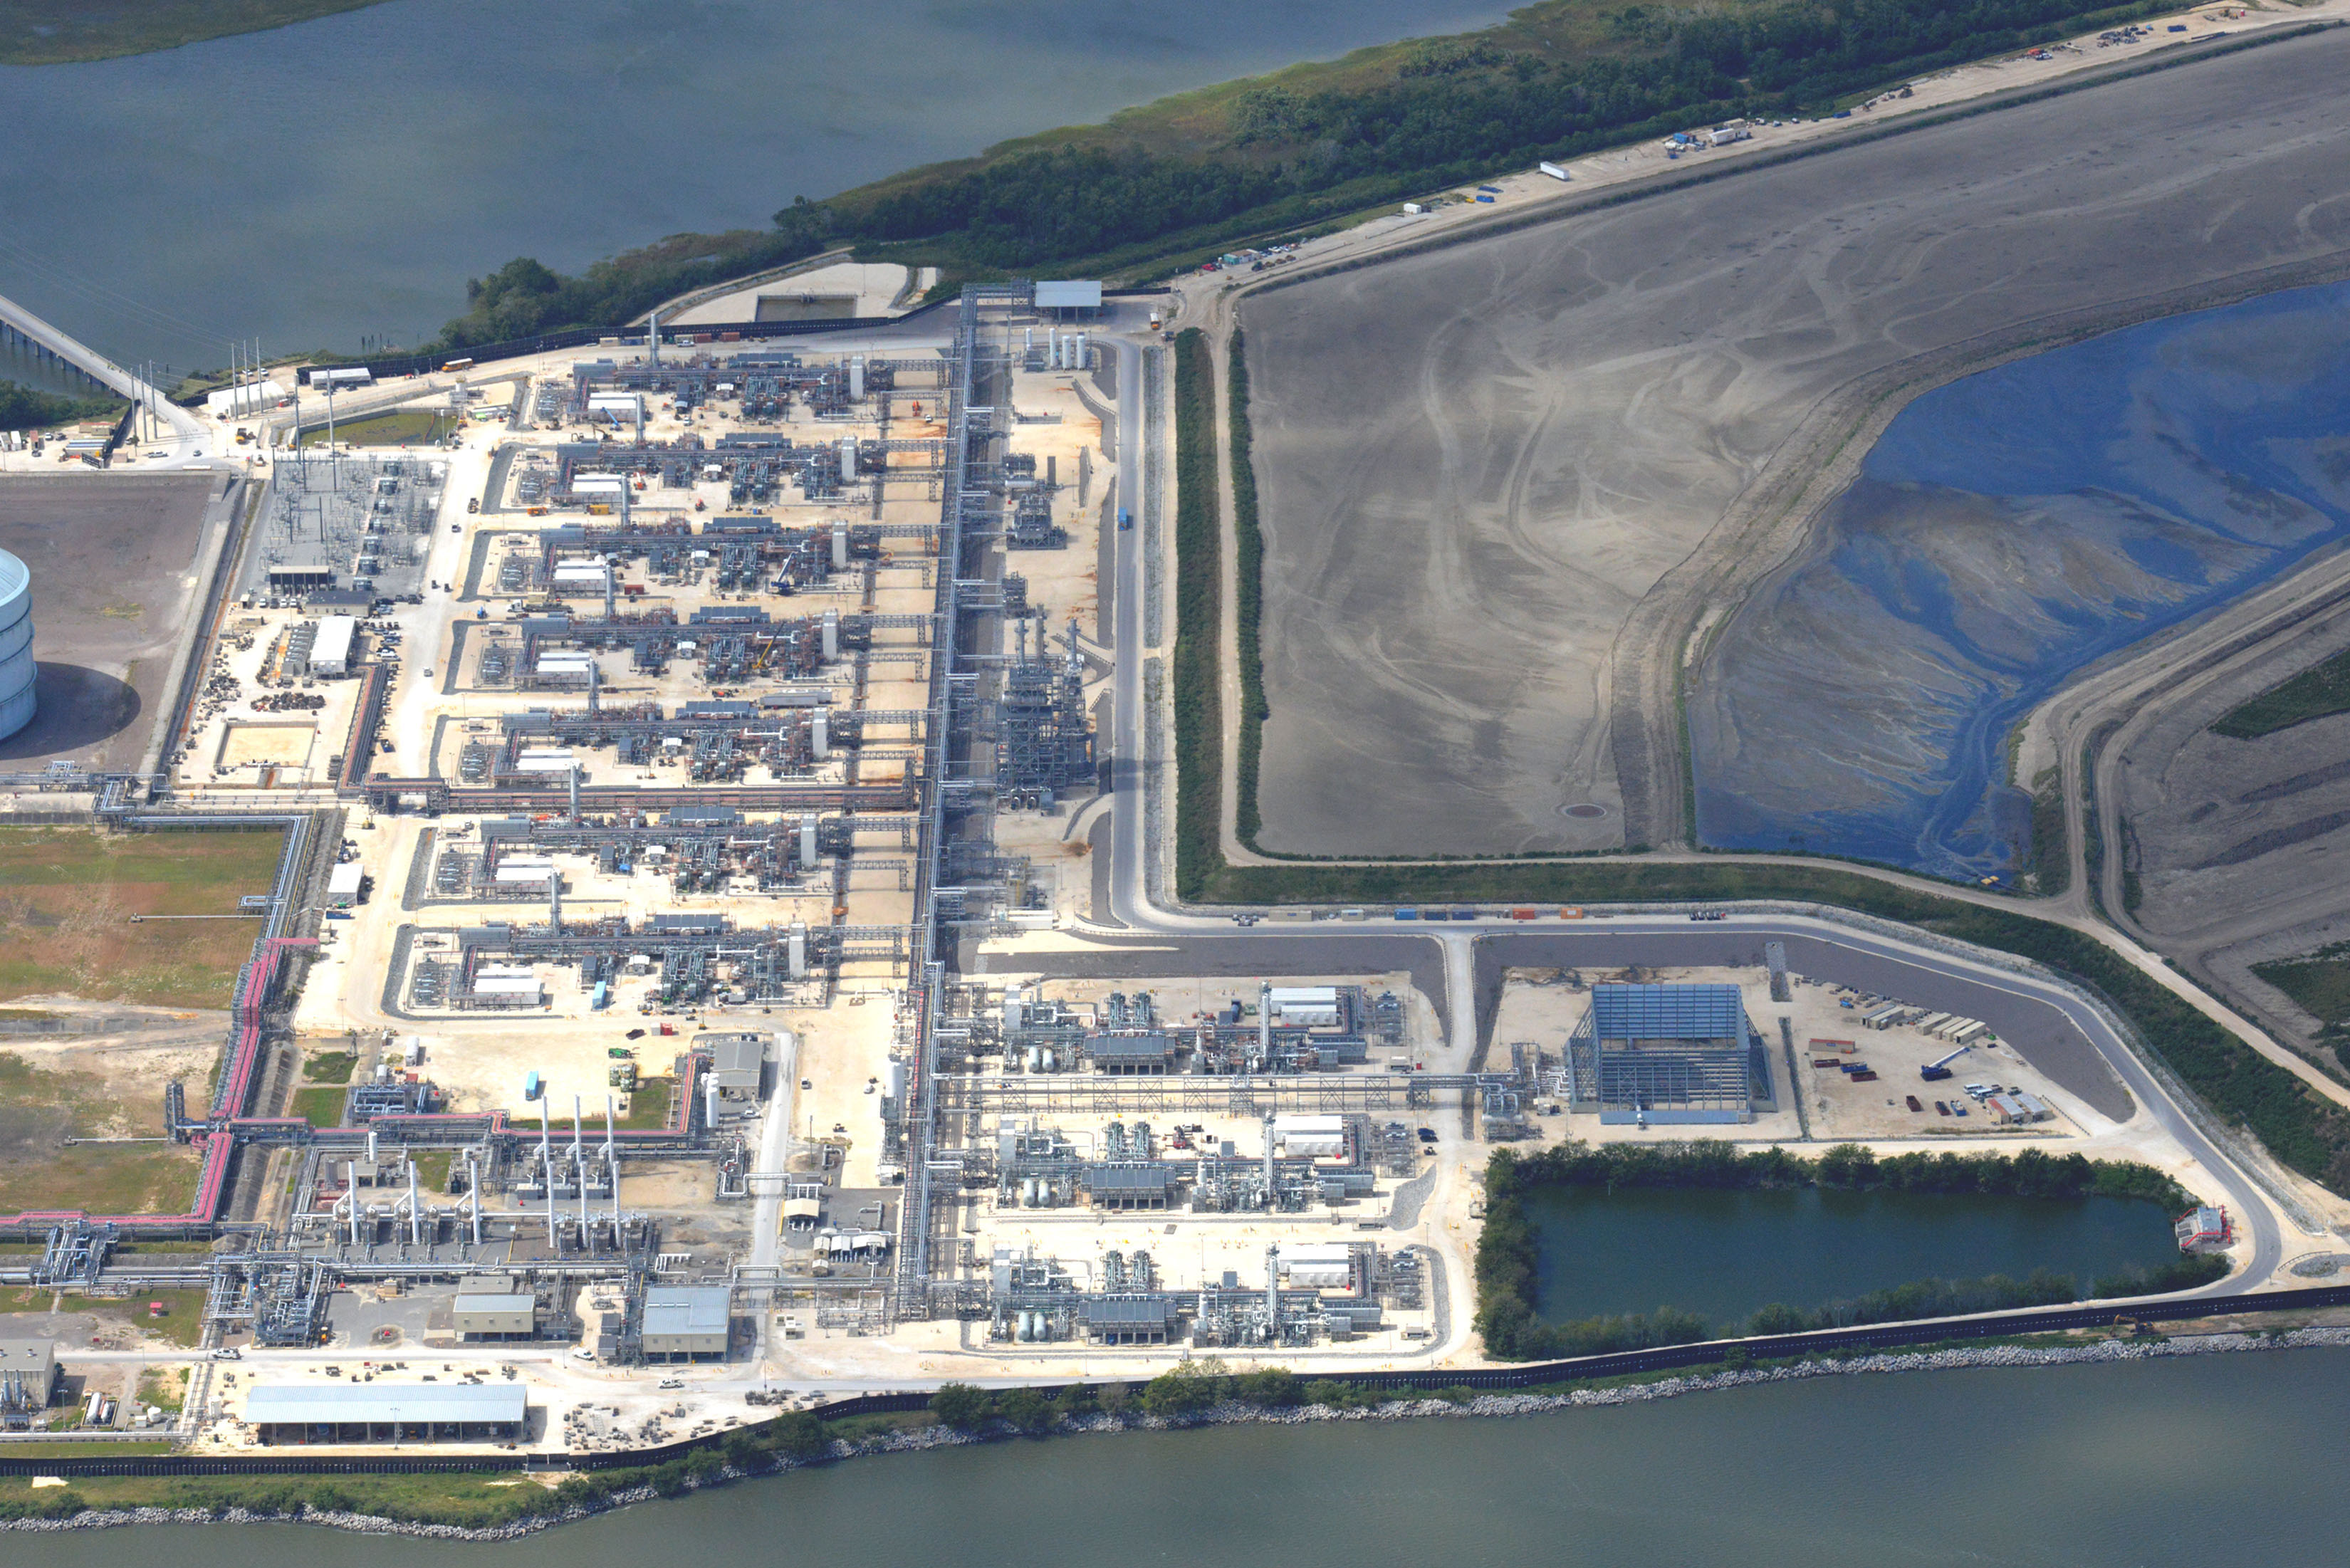 The second LNG export terminal on the U.S. East Coast came into service in early October. Elba Liquefaction is a JV between Kinder Morgan and EIG Global Energy Partners. (Source: Kinder Morgan)